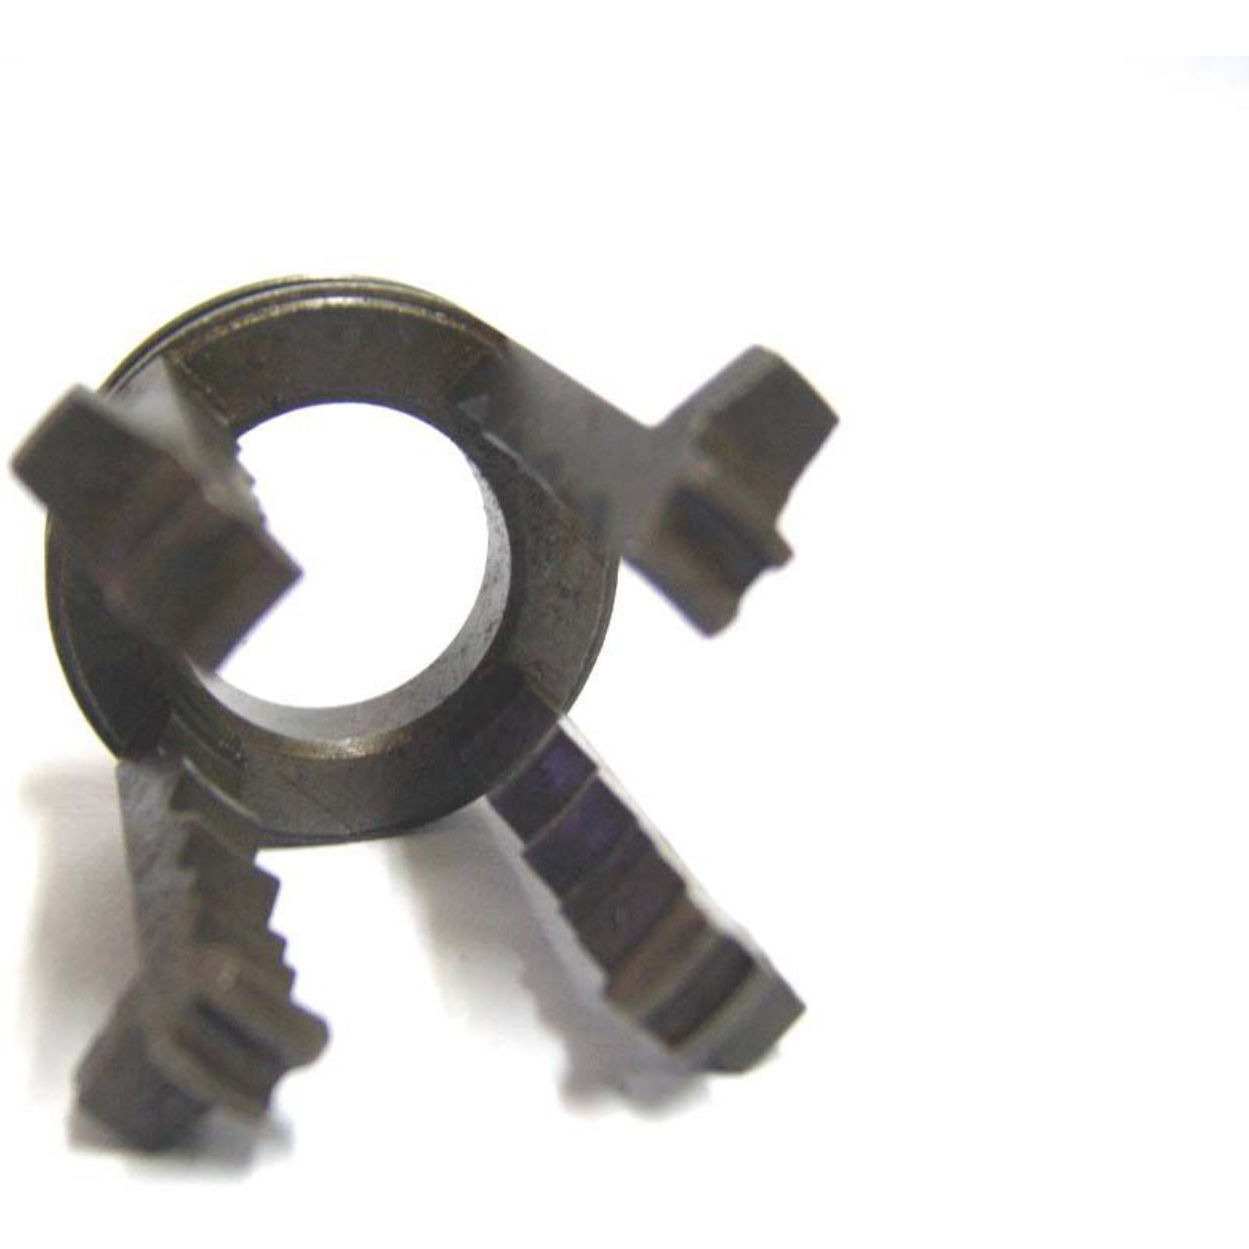 High Quality Small Frame Gear Selector Fits Vespa PK100 Model